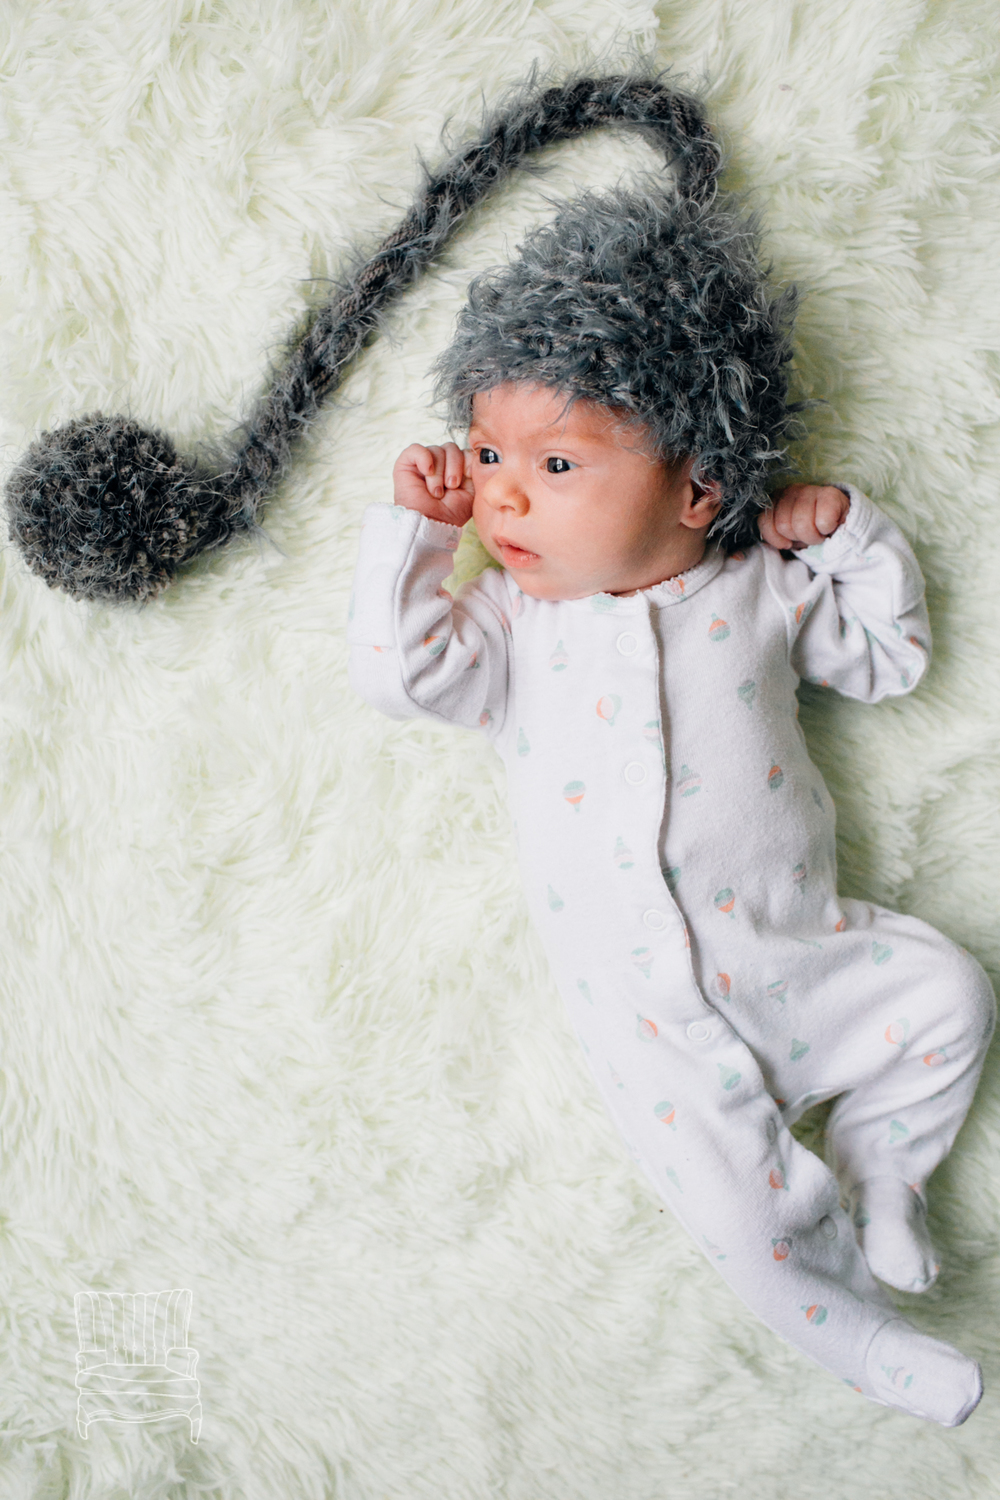 bellingham-newborn-photographer-photo-lifestyle-session-harper-23.jpg